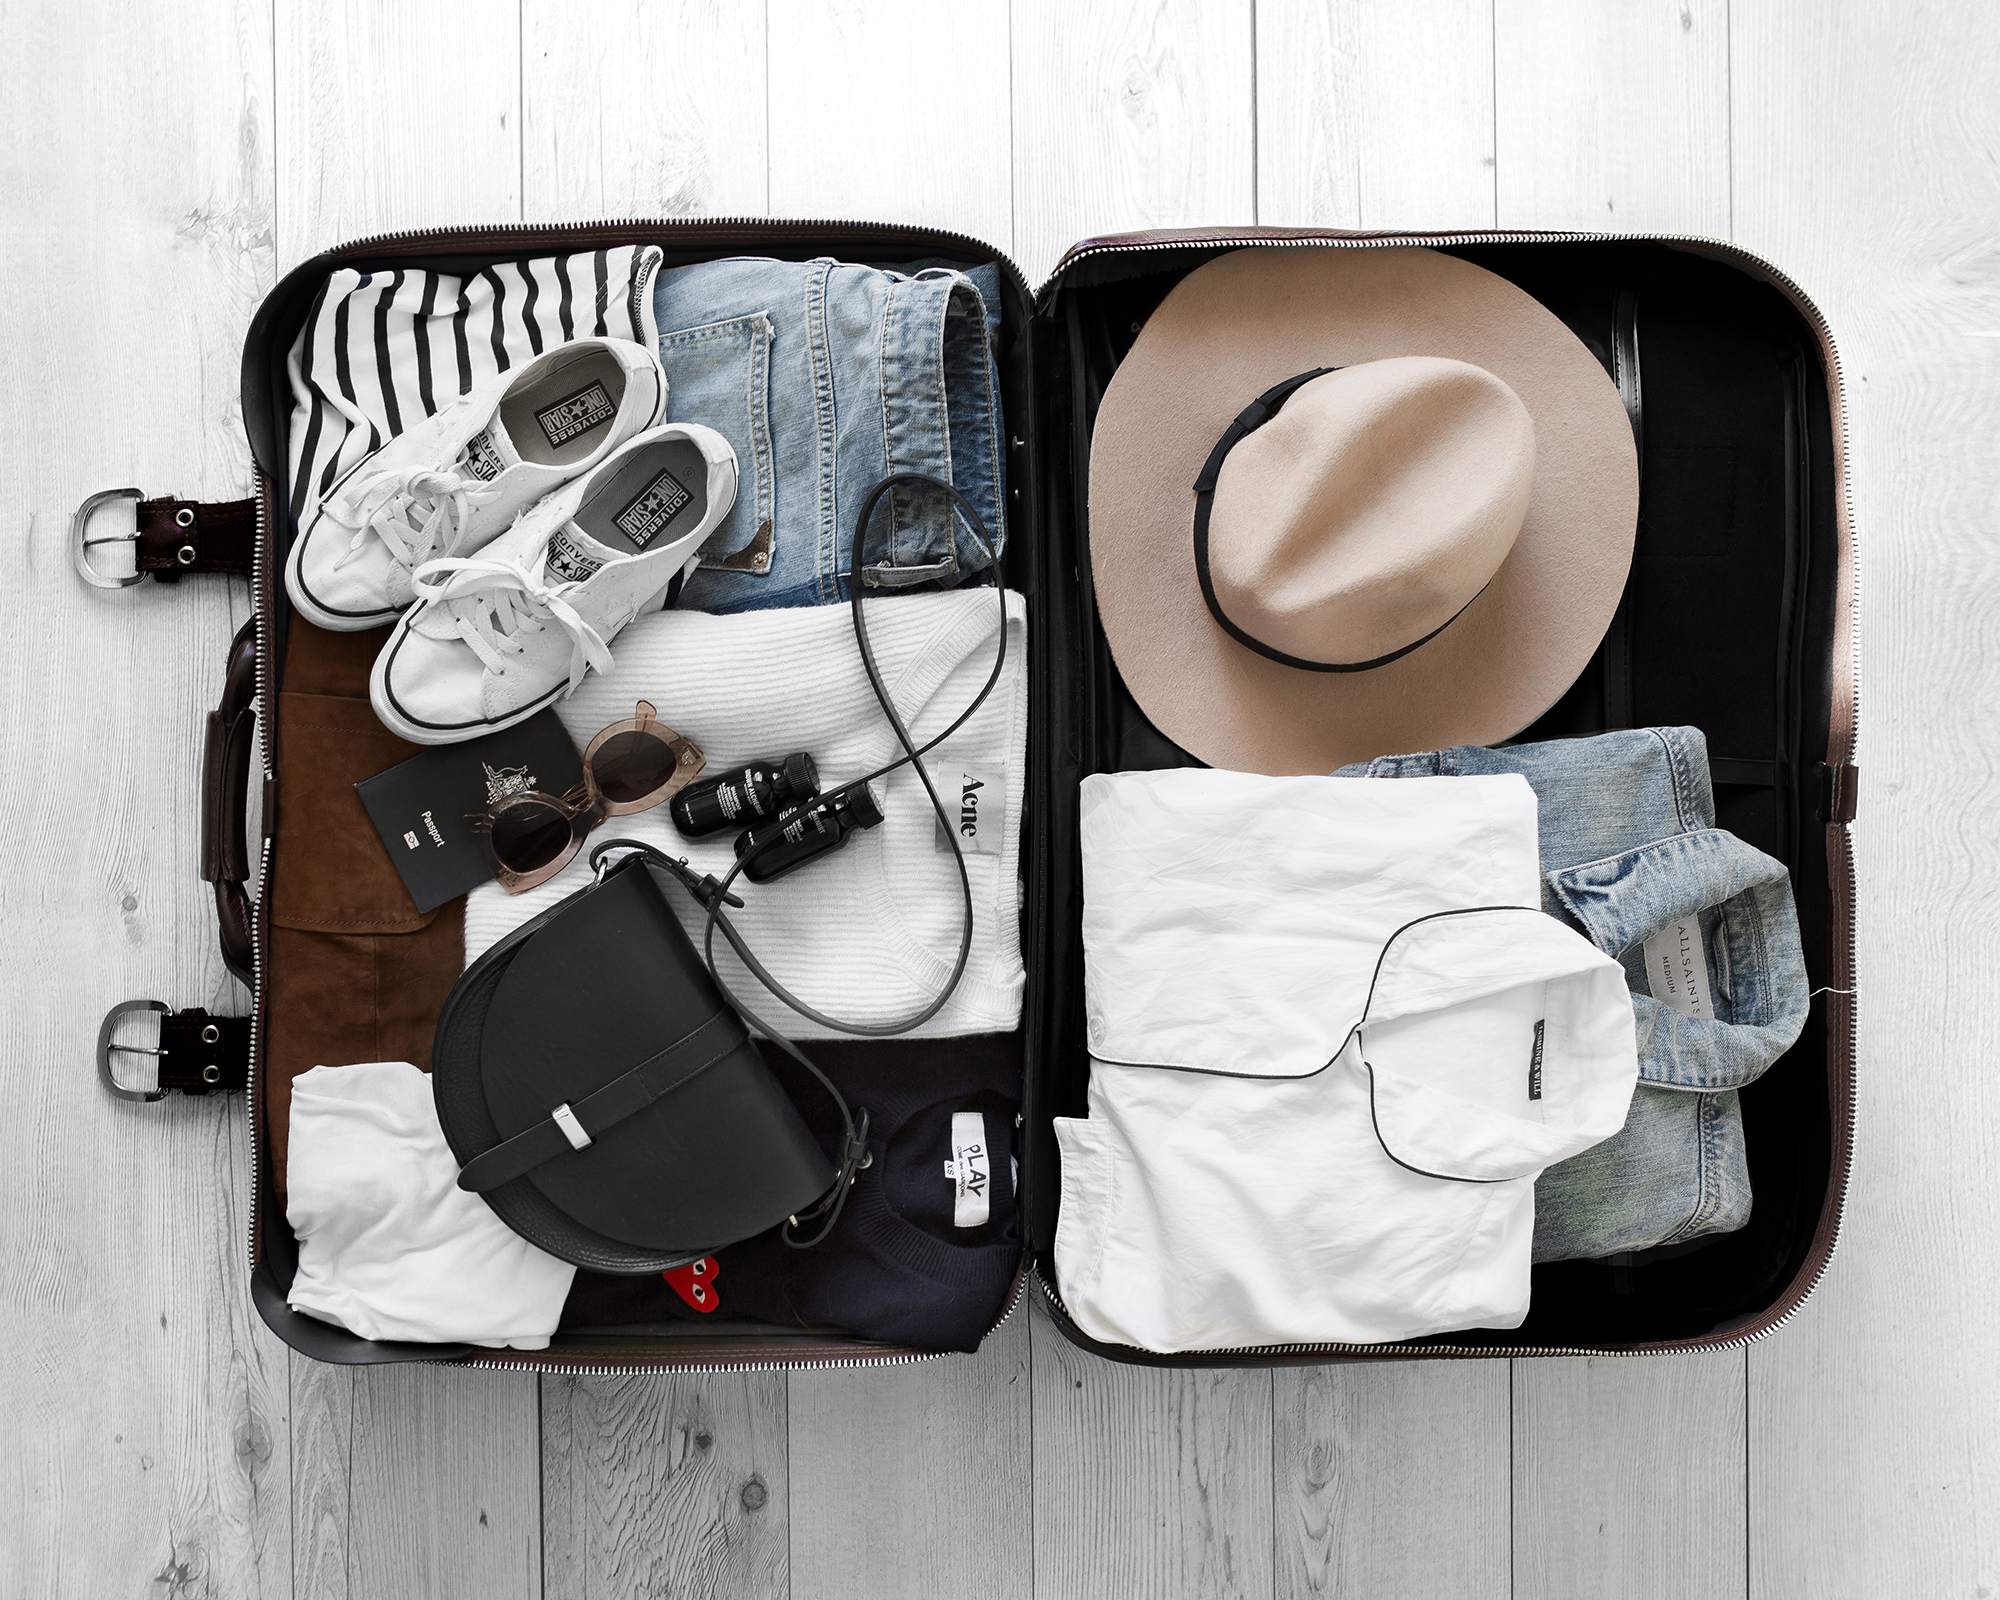 How To Pack Light - Our Top Secrets